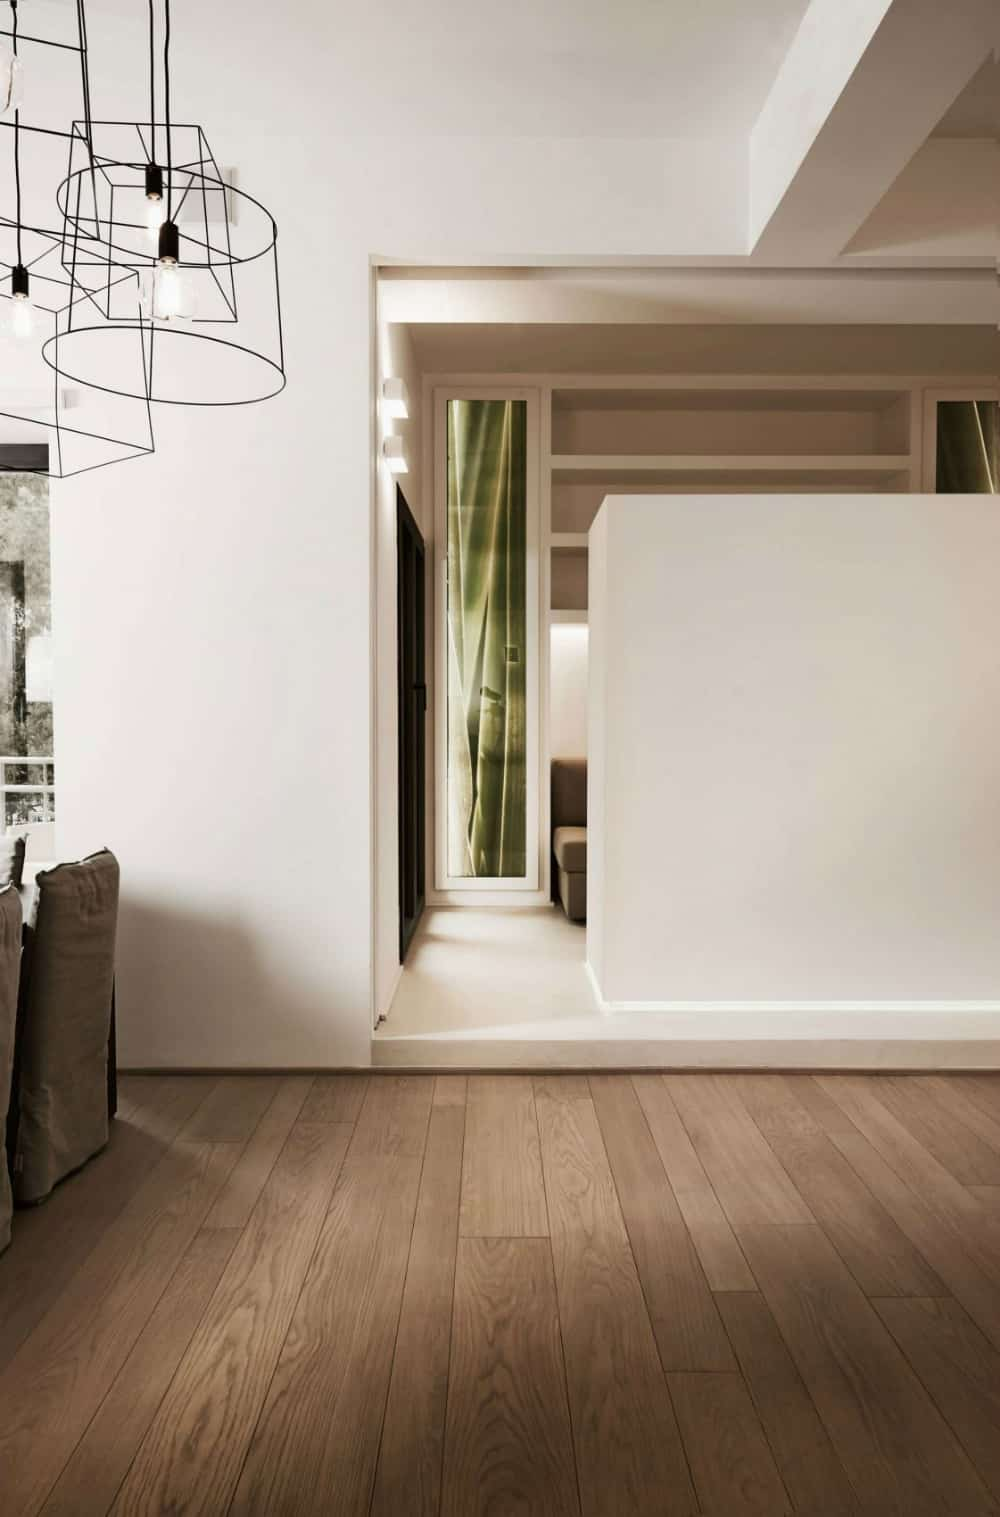 Half wall dividing areas in open layout